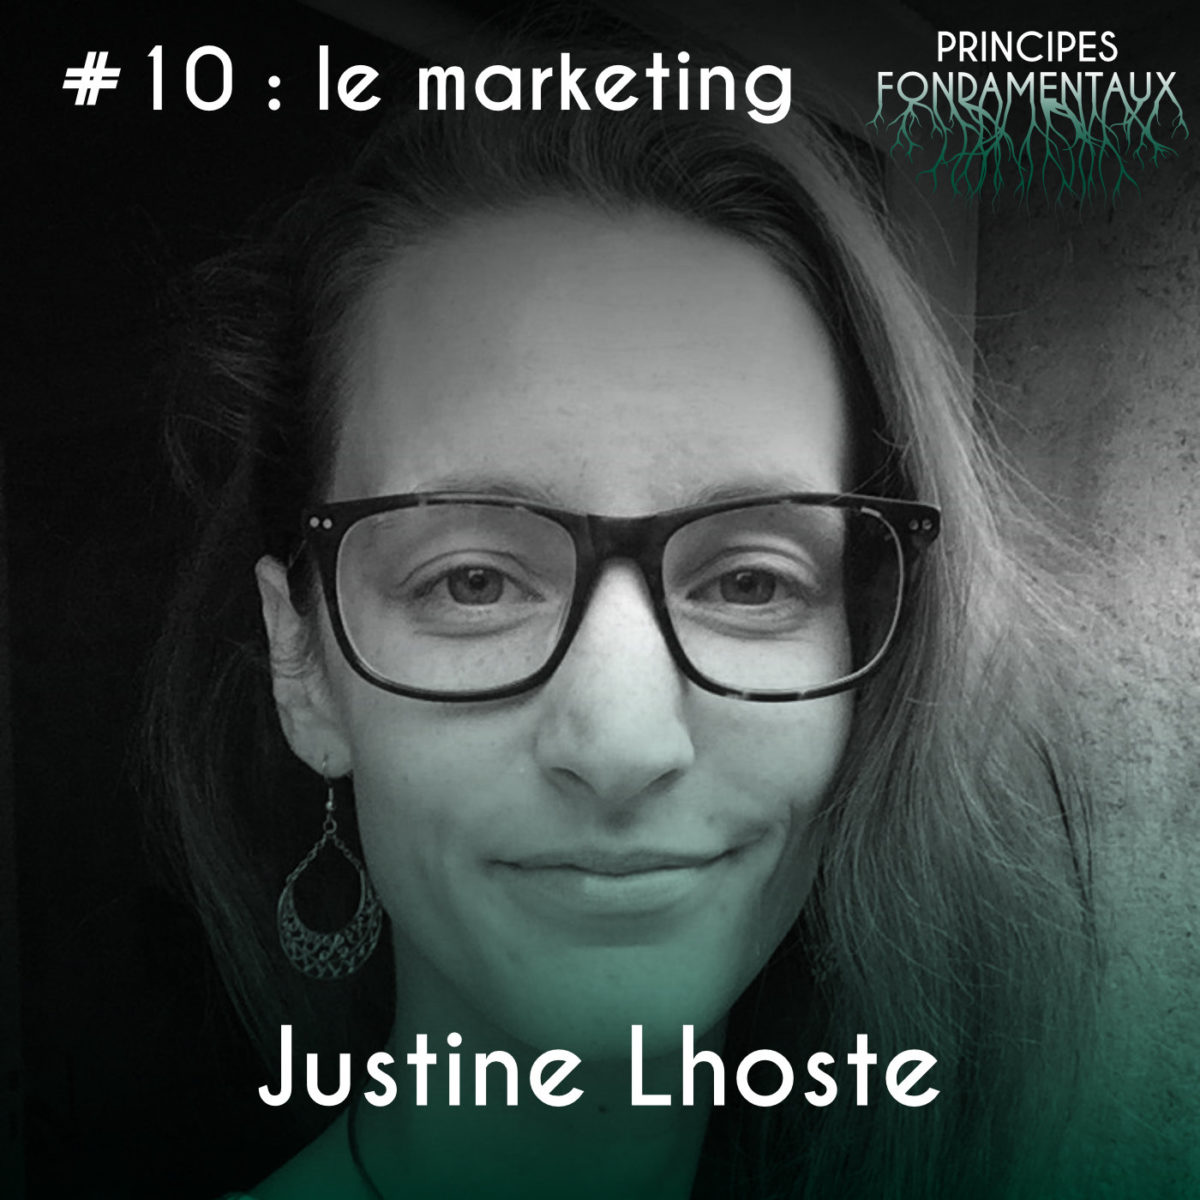 Couverture Podcast #10 Justine Lhoste